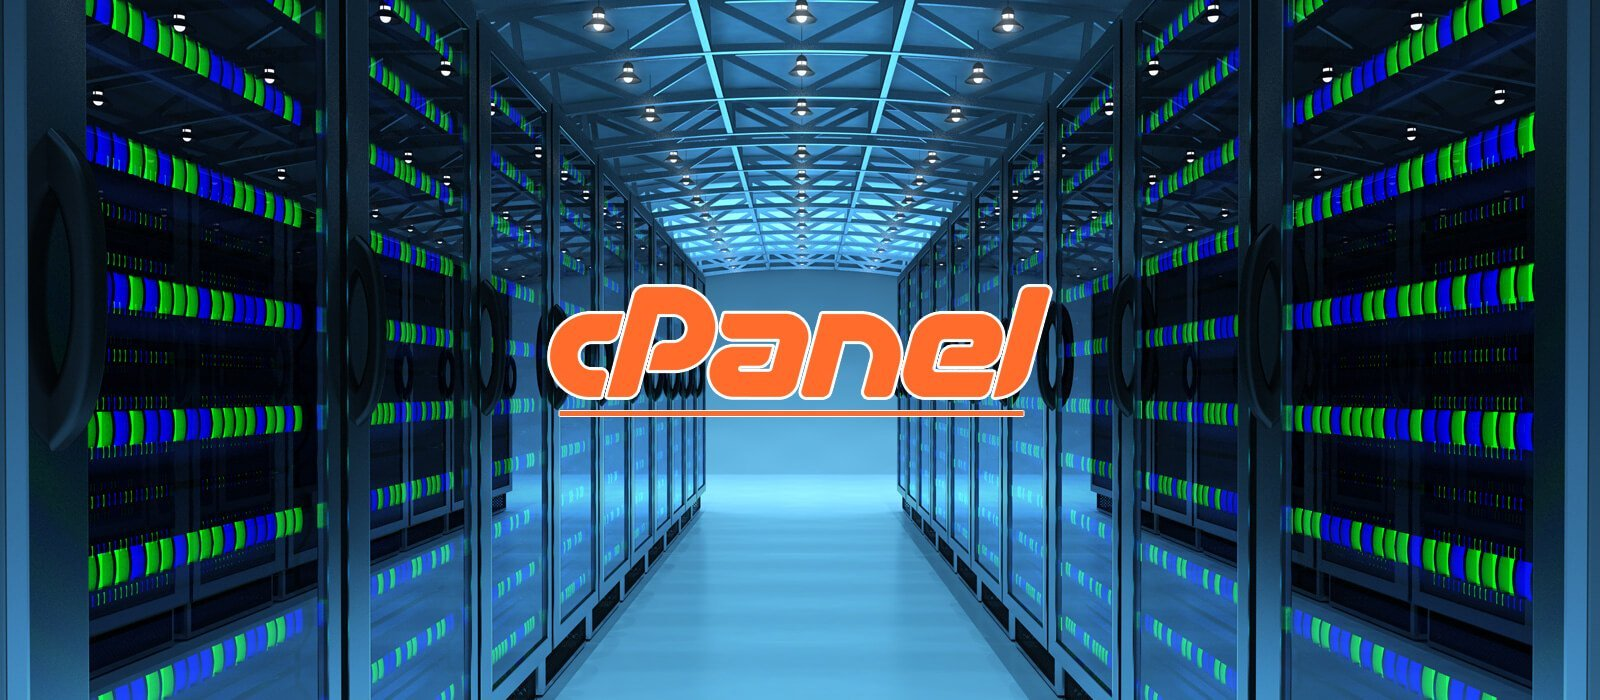 Fake Security Advisory Used In Clever cPanel Phishing Attack